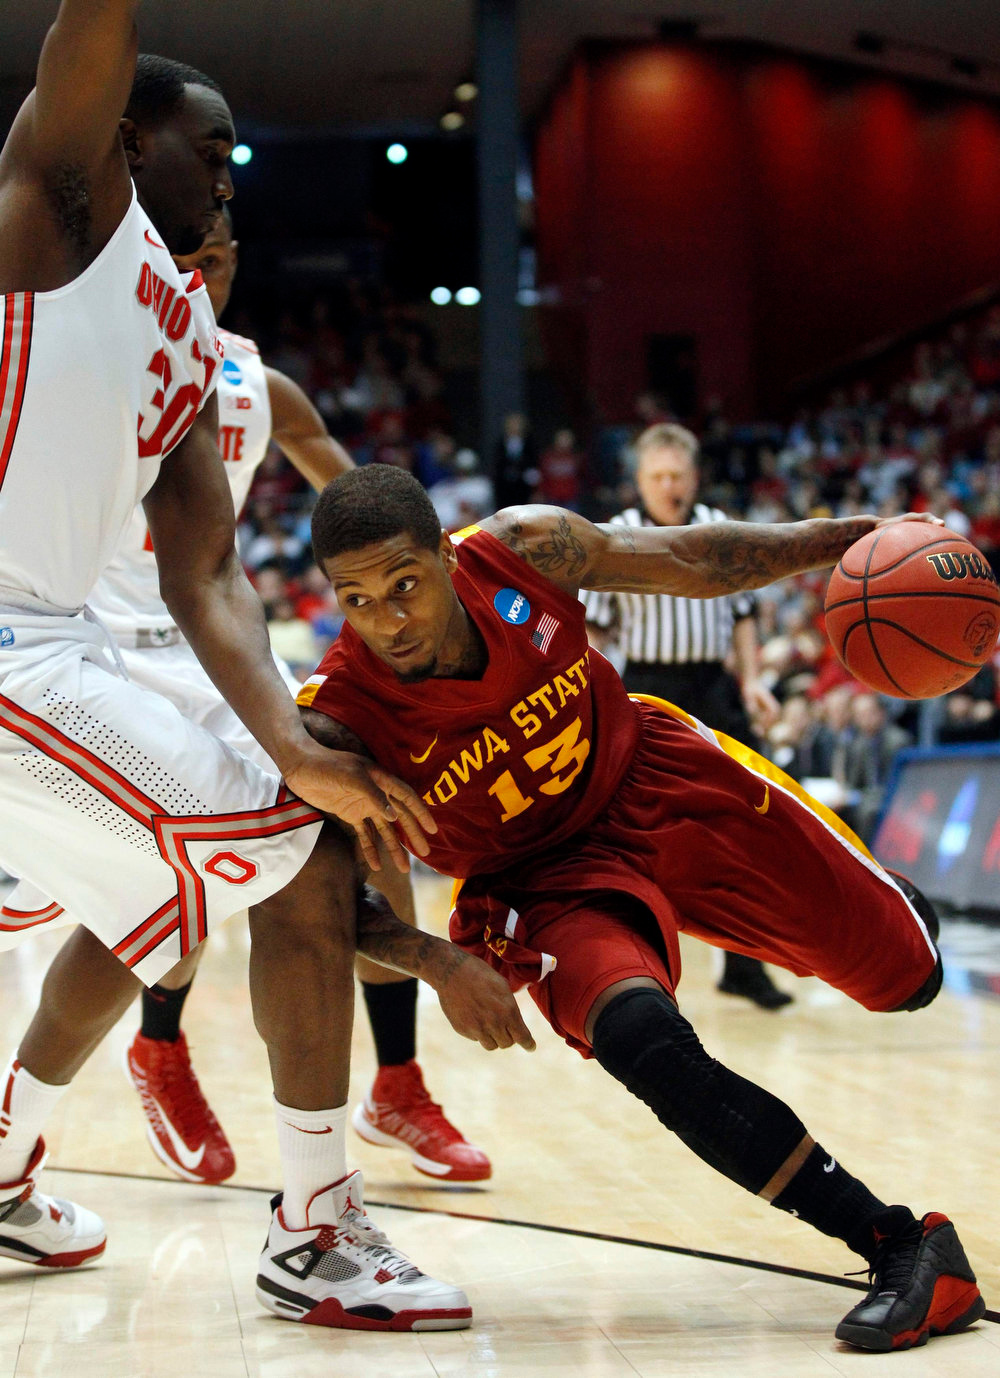 . Iowa State Cyclones guard Korie Lucious (R) dribbles past Ohio State Buckeyes forward Evan Ravenel (30) during the first half of their third round NCAA tournament basketball game in Dayton, Ohio March 24, 2013.   REUTERS/Matt Sullivan